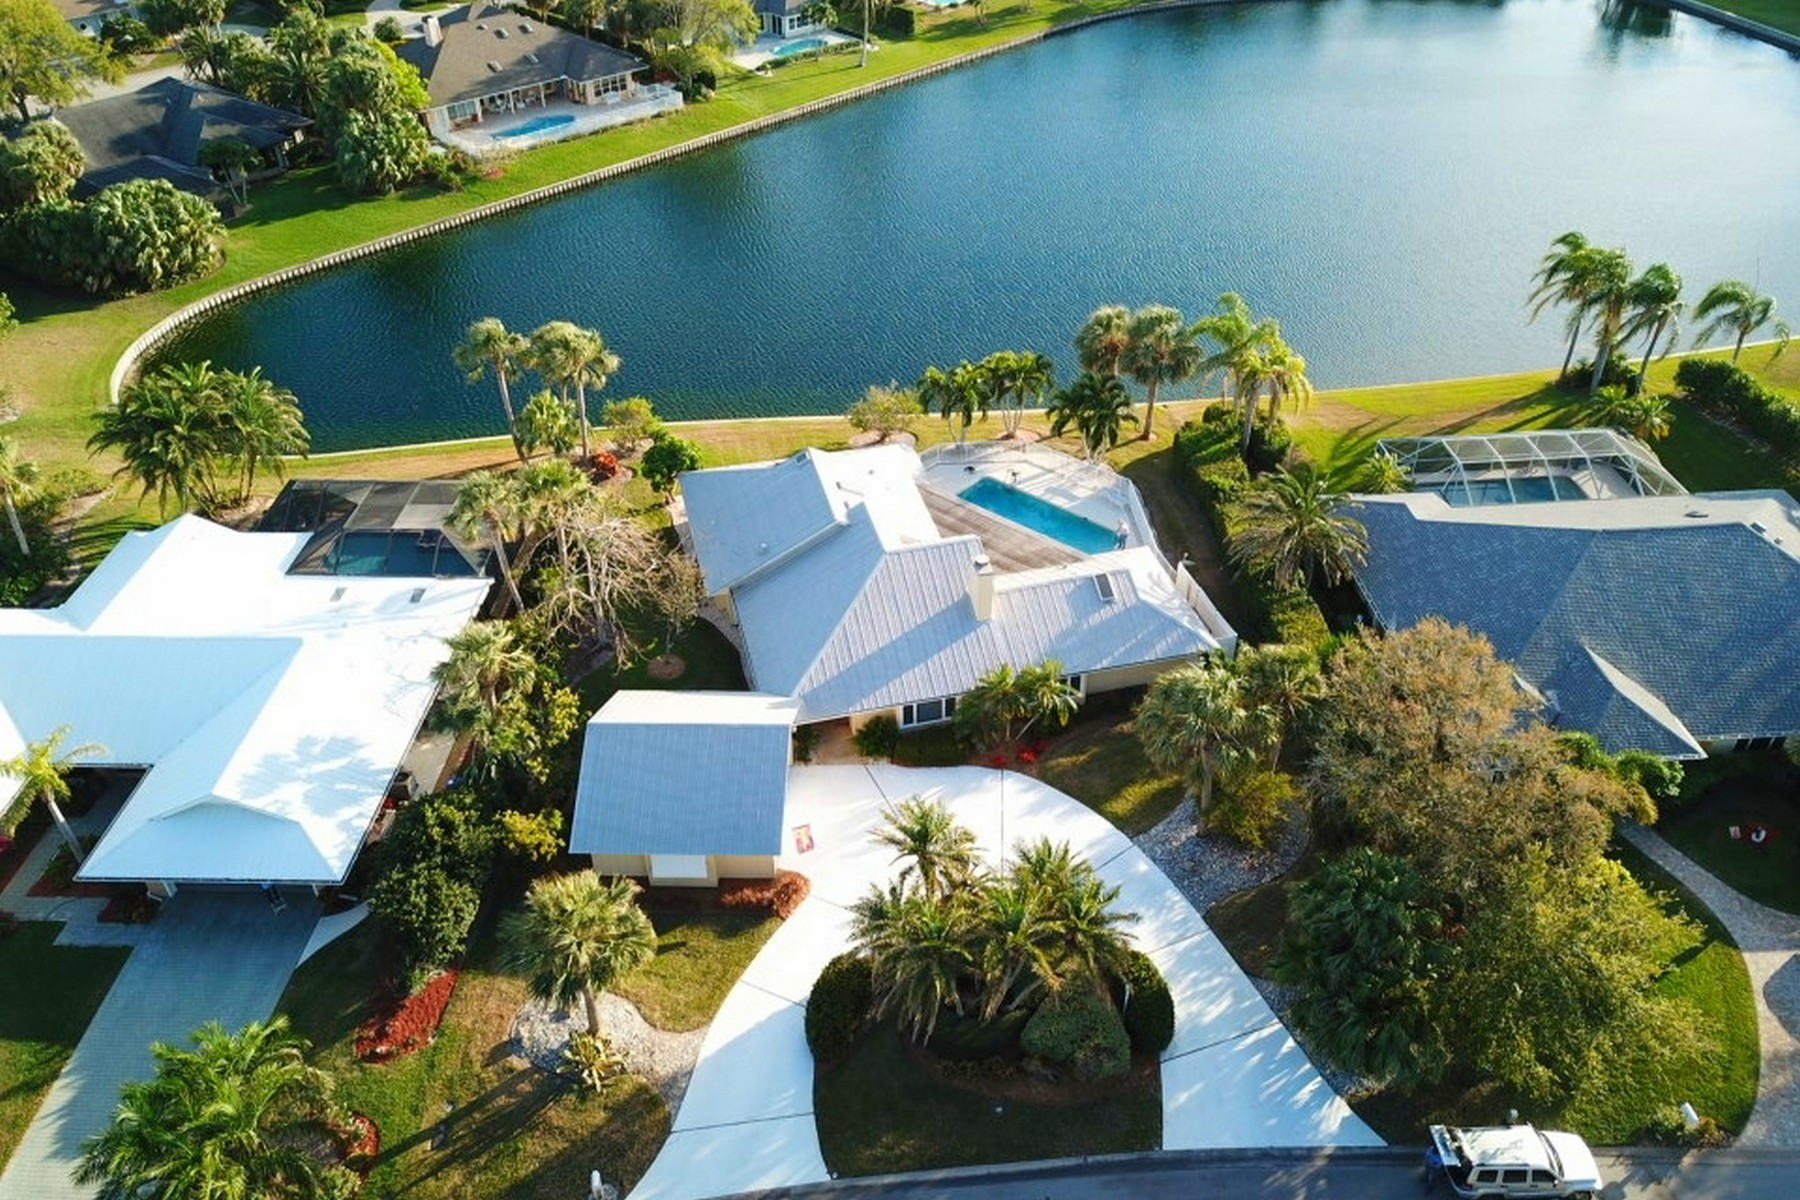 Single Family Home for Sale at Loving This Beach Paradise 32 Cache Cay Drive Vero Beach, Florida 32963 United States